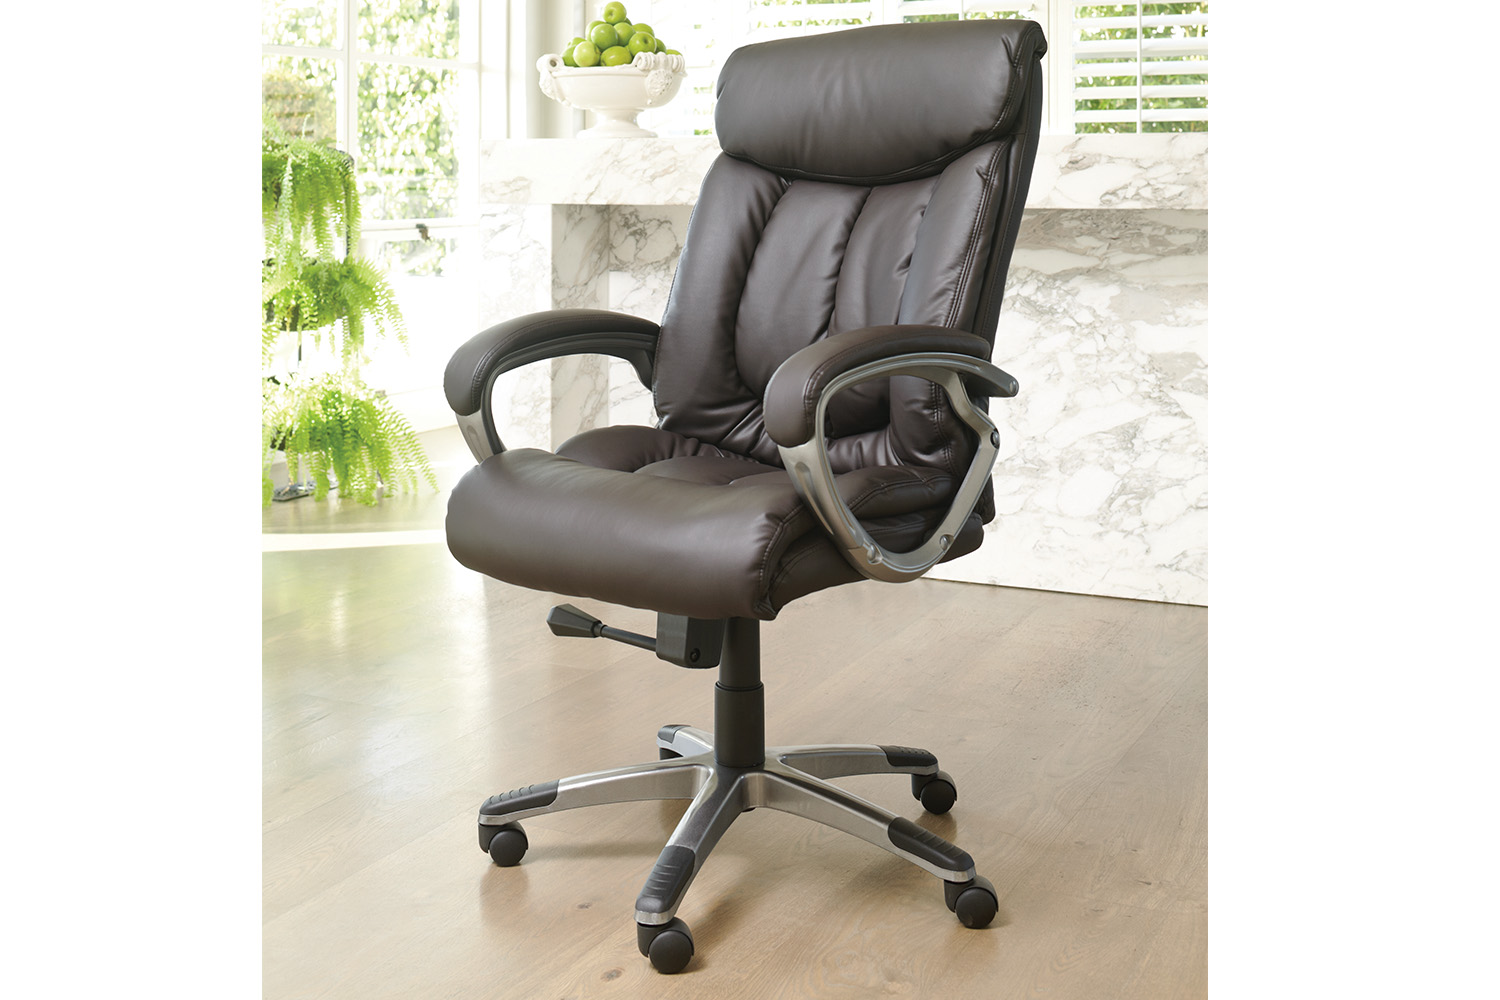 desk chair harvey norman white leather barber cooper office new zealand